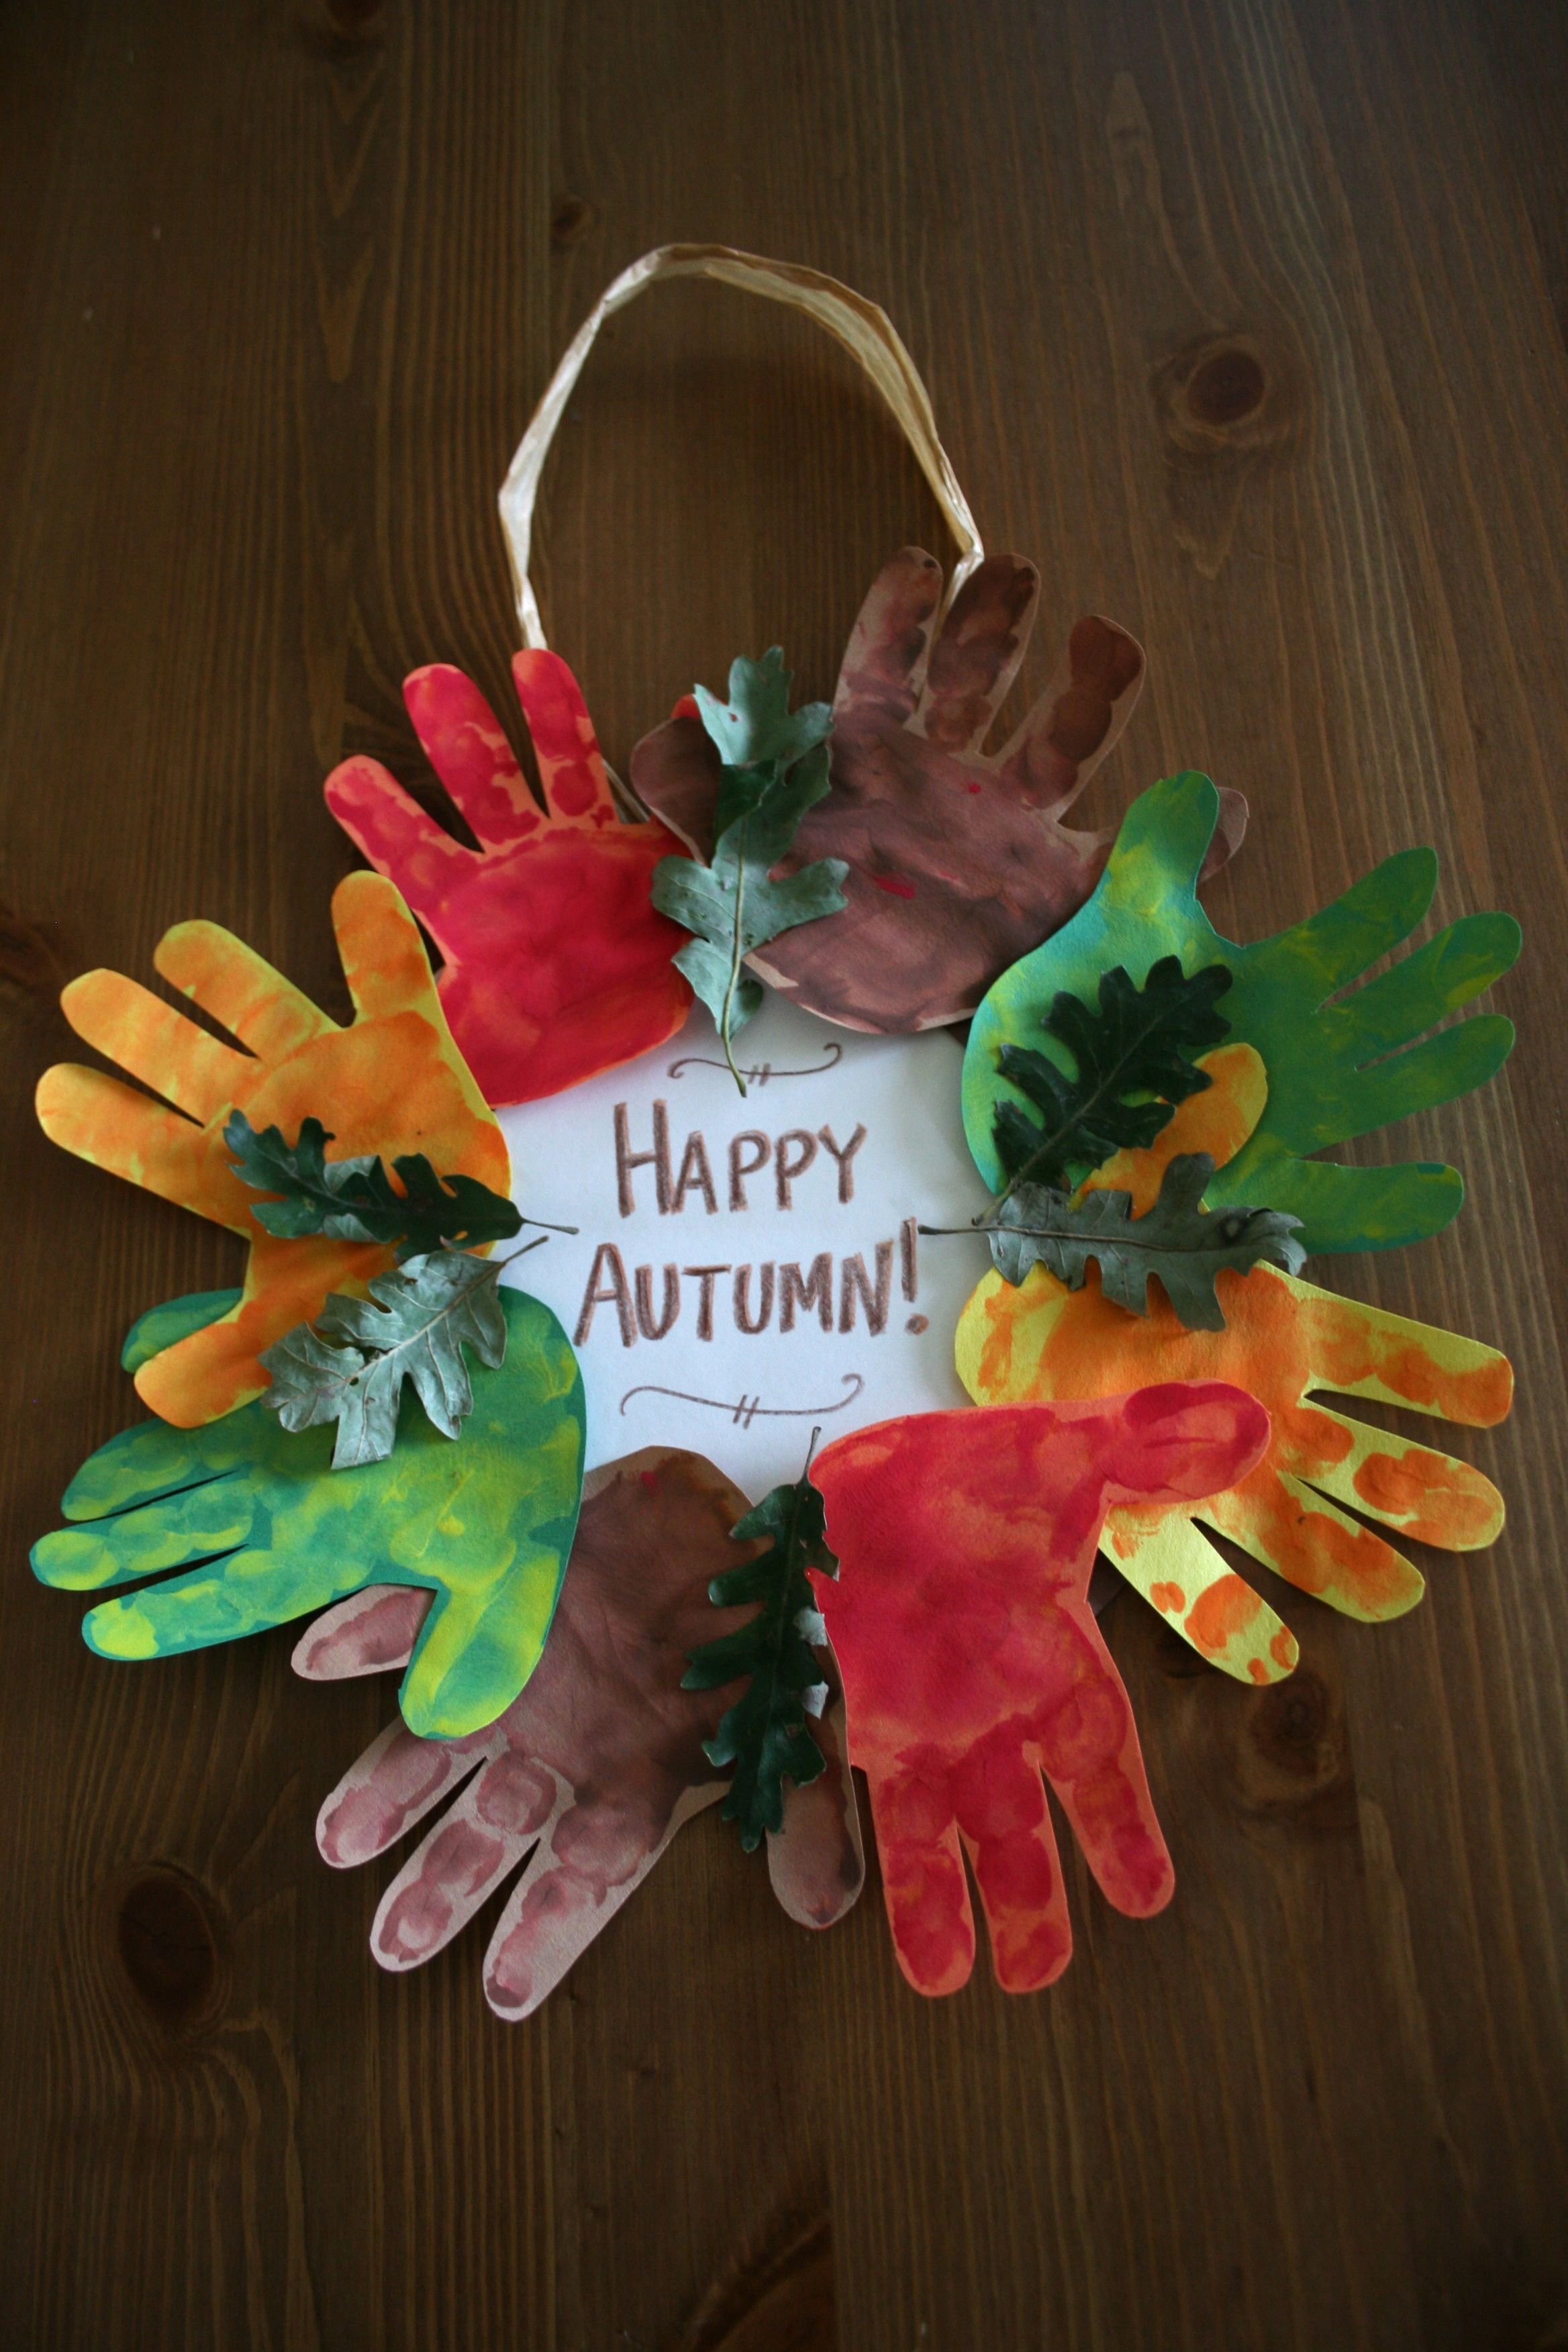 39+ Fall craft ideas for 2 year olds ideas